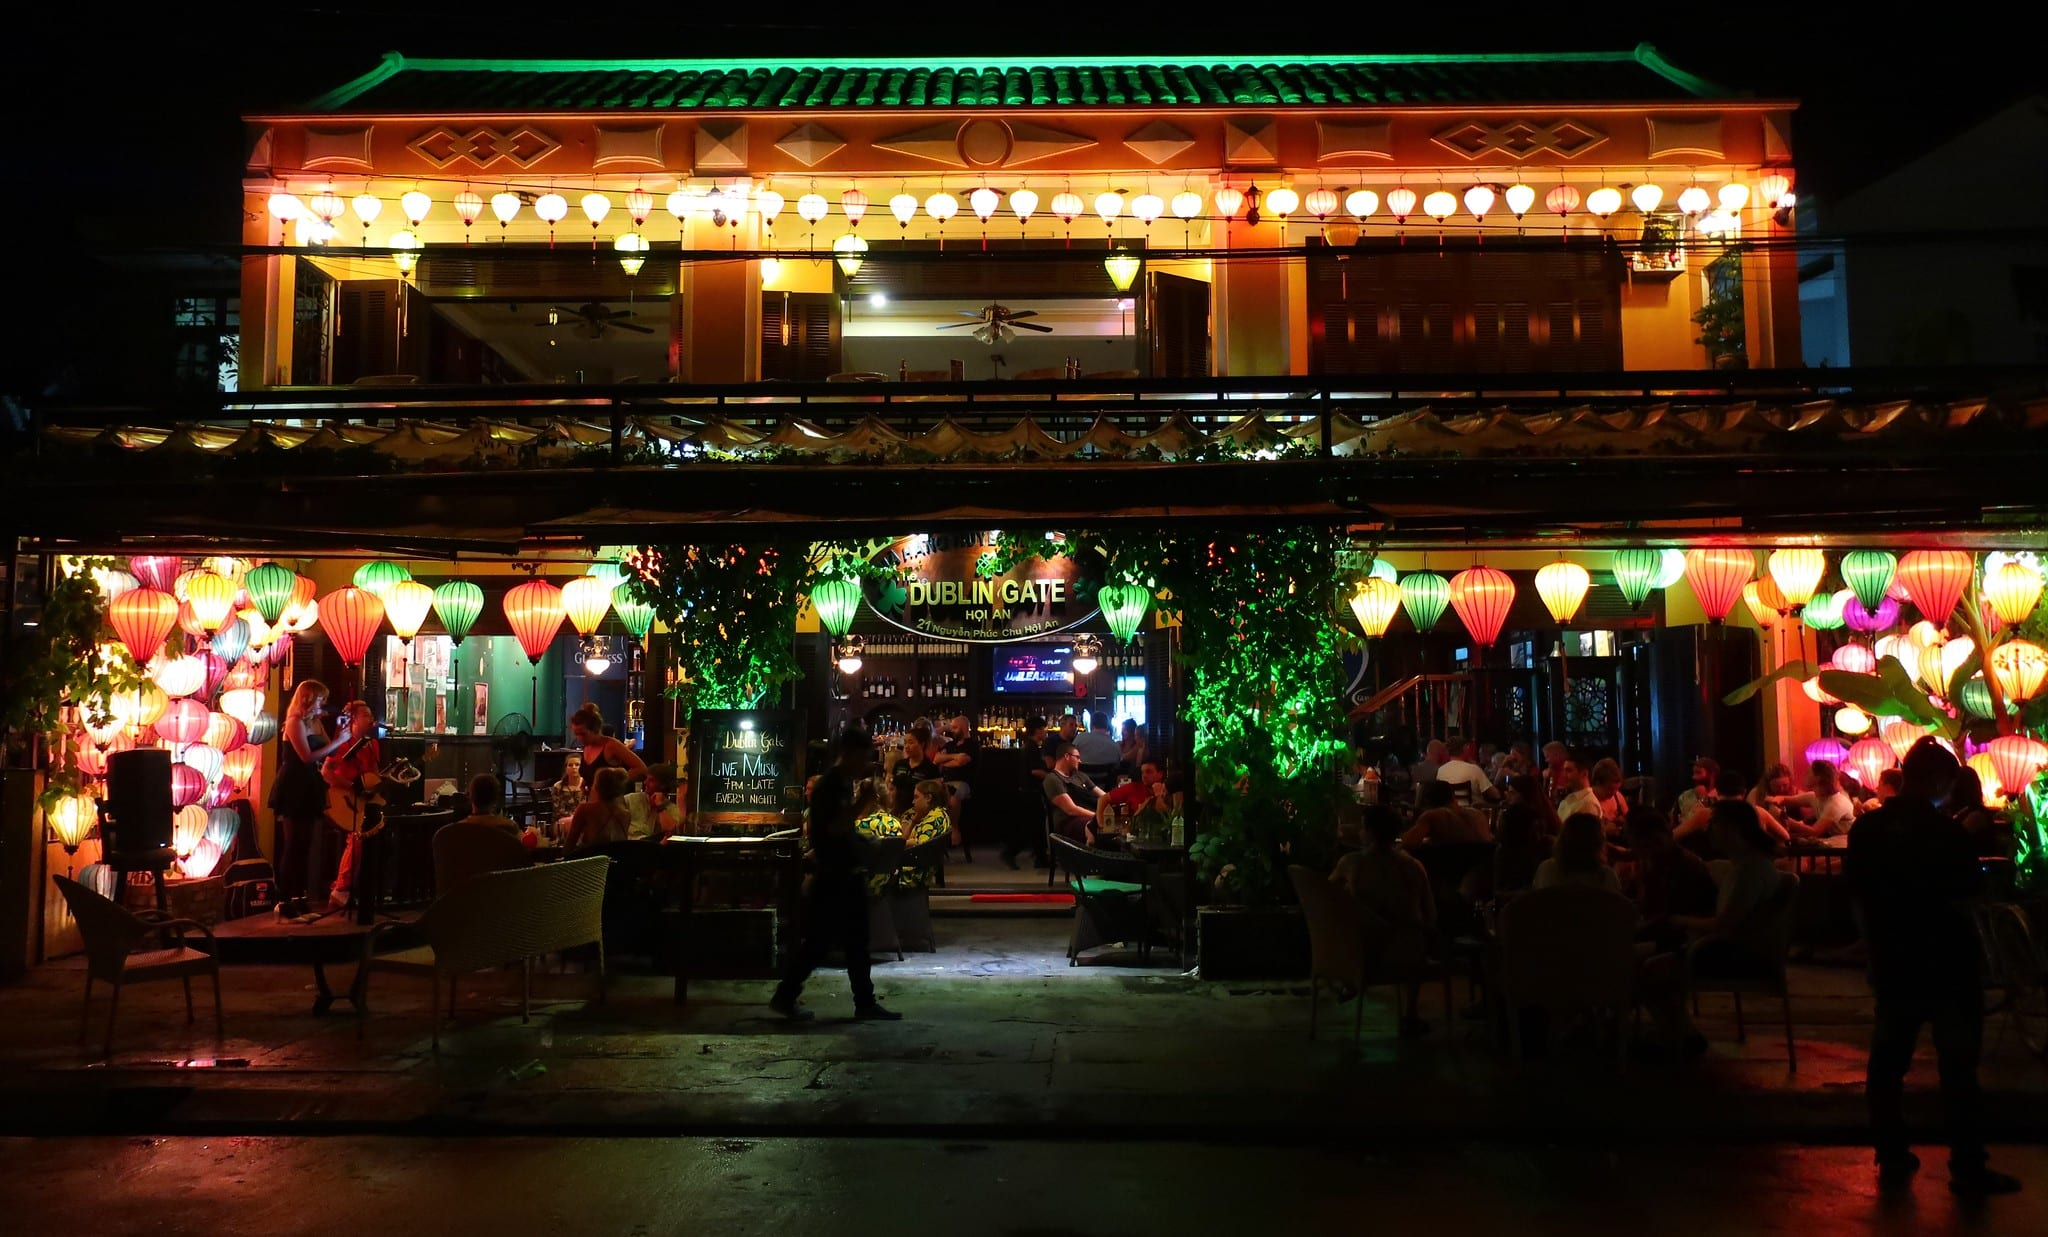 Image of the Dublin Gate in Hoi An, Vietnam